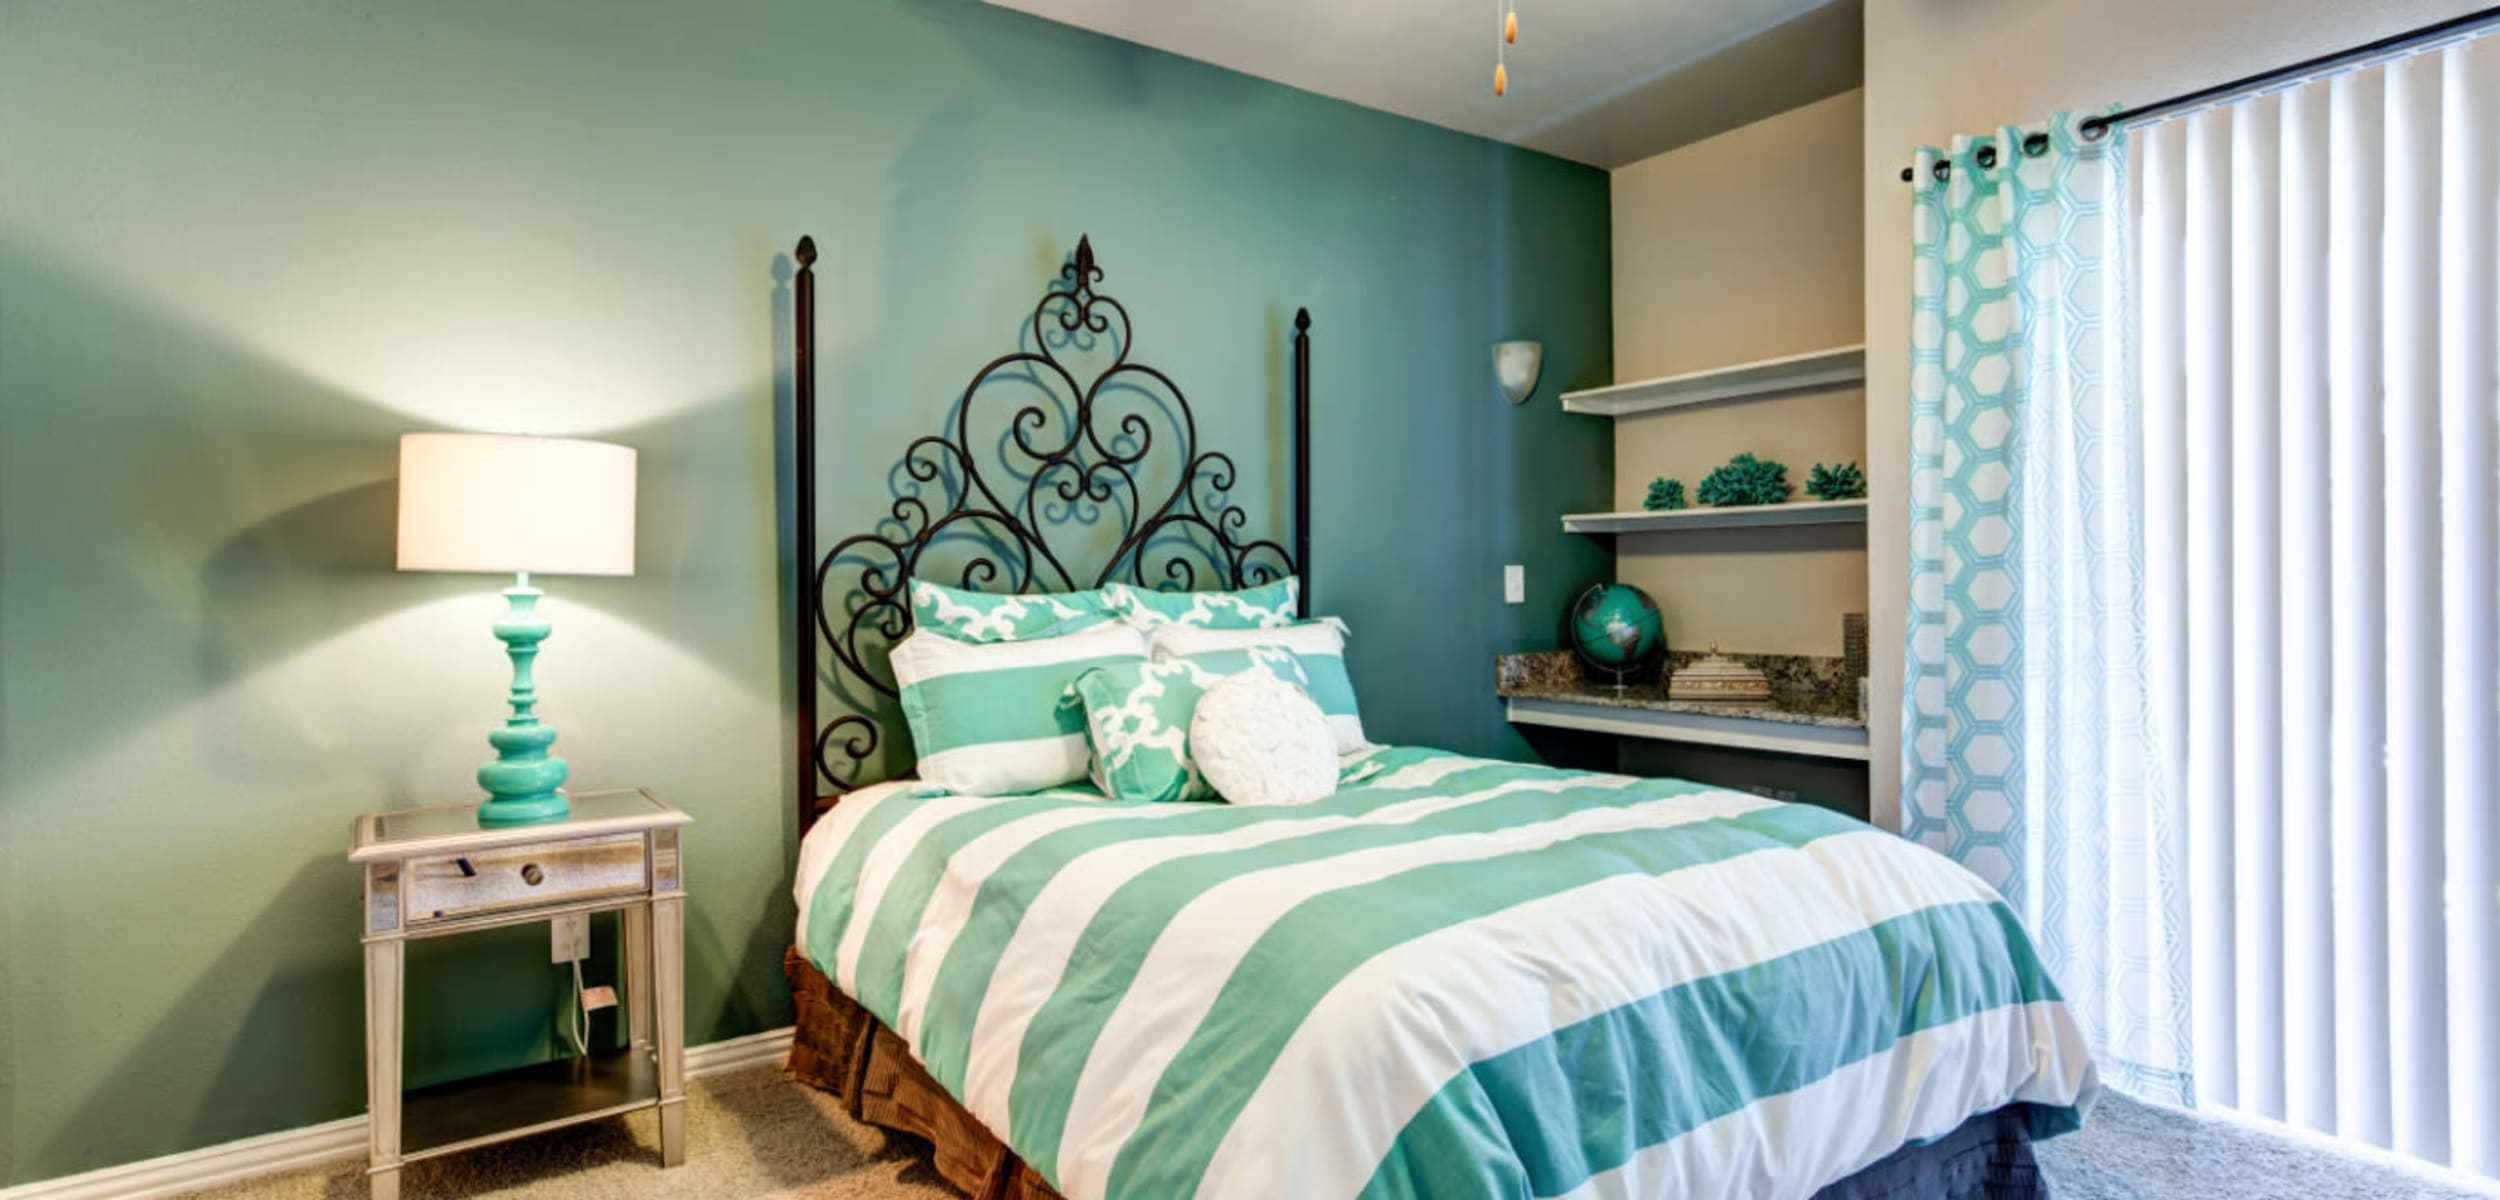 Modern style bedroom with built in shelves area and door to private balcony at Marquis at Silver Oaks in Grapevine, Texas